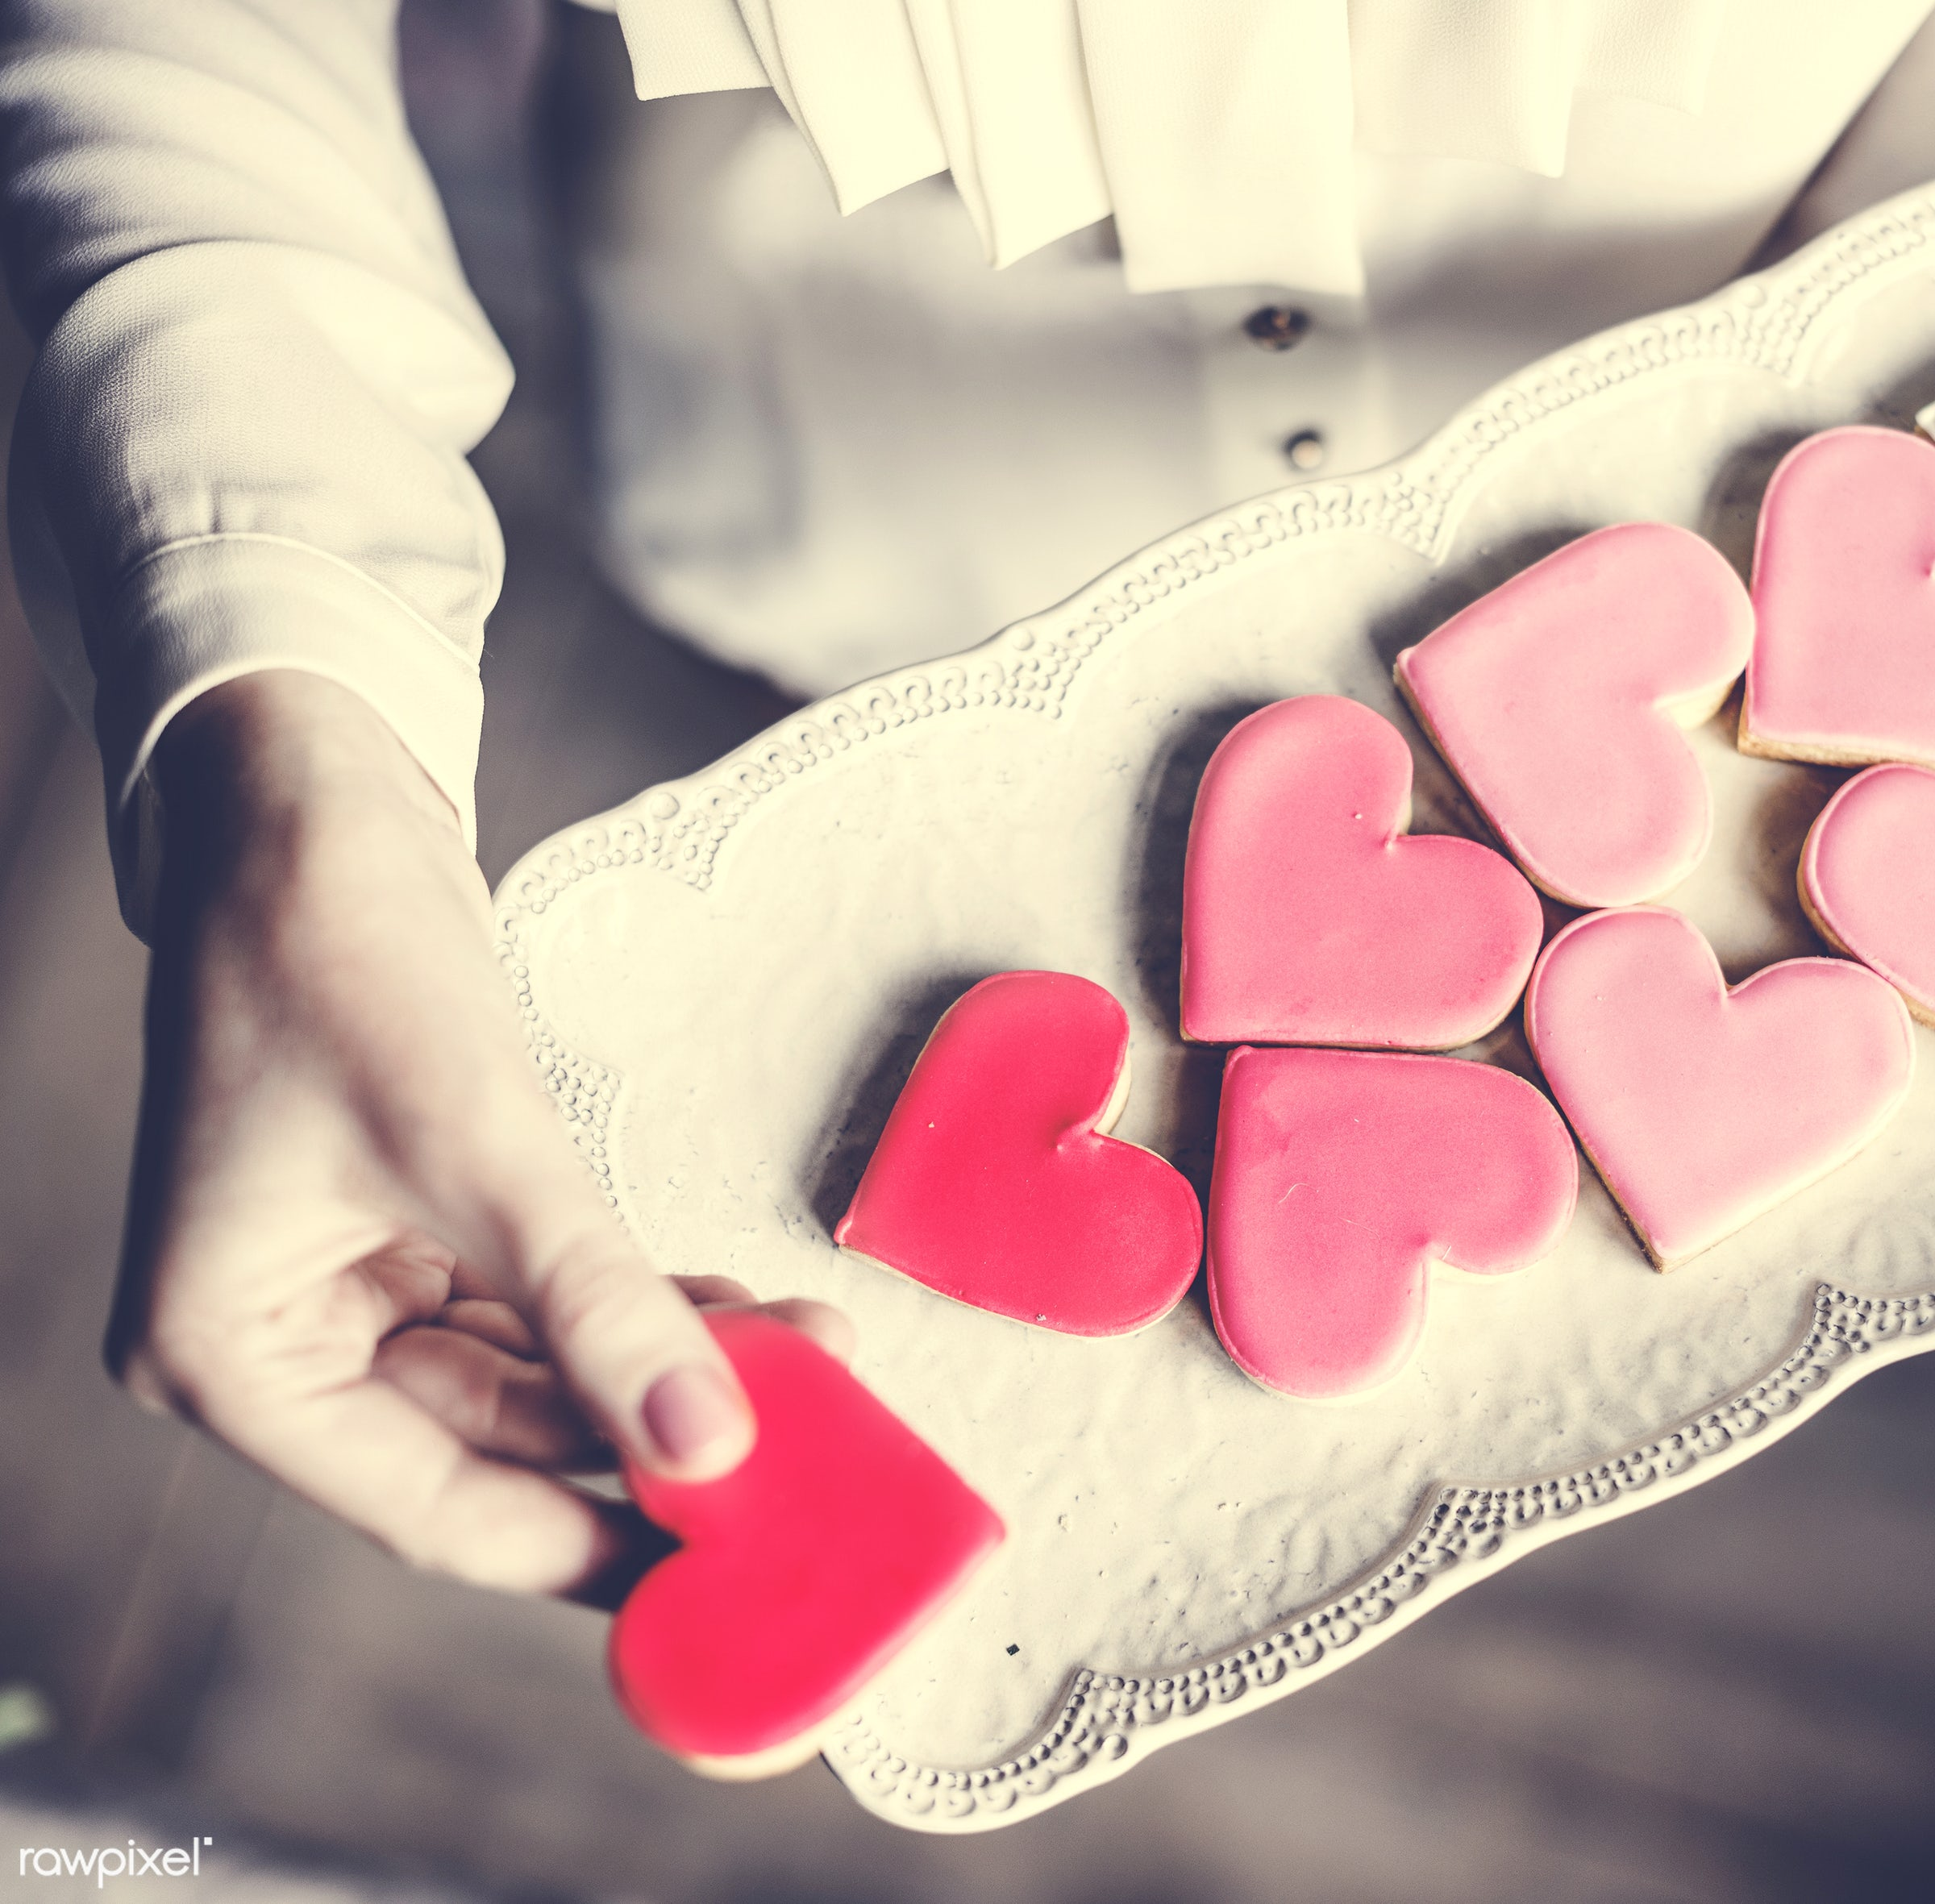 dish, person, holding, people, baked, love, girl, bakery, hands, woman, pink, aerial view, cookies, carry, dessert, heart,...